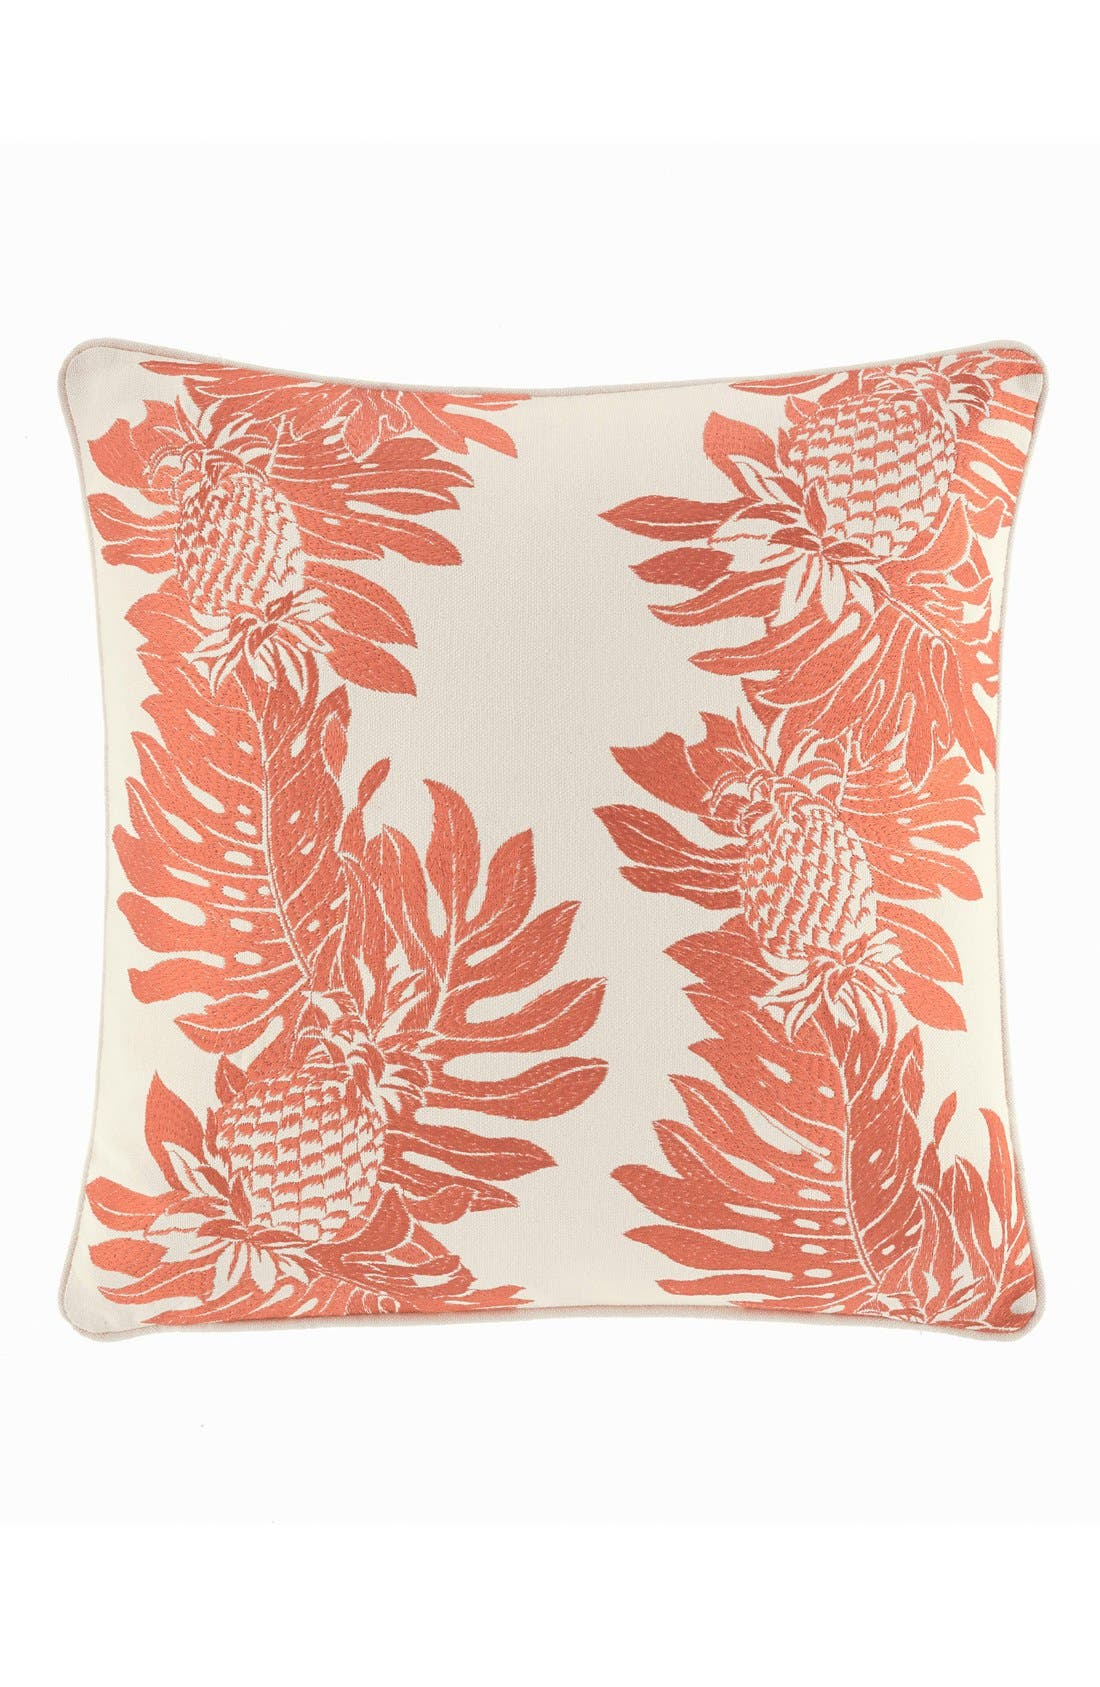 Main Image - Tommy Bahama 'Pineapple' Accent Pillow